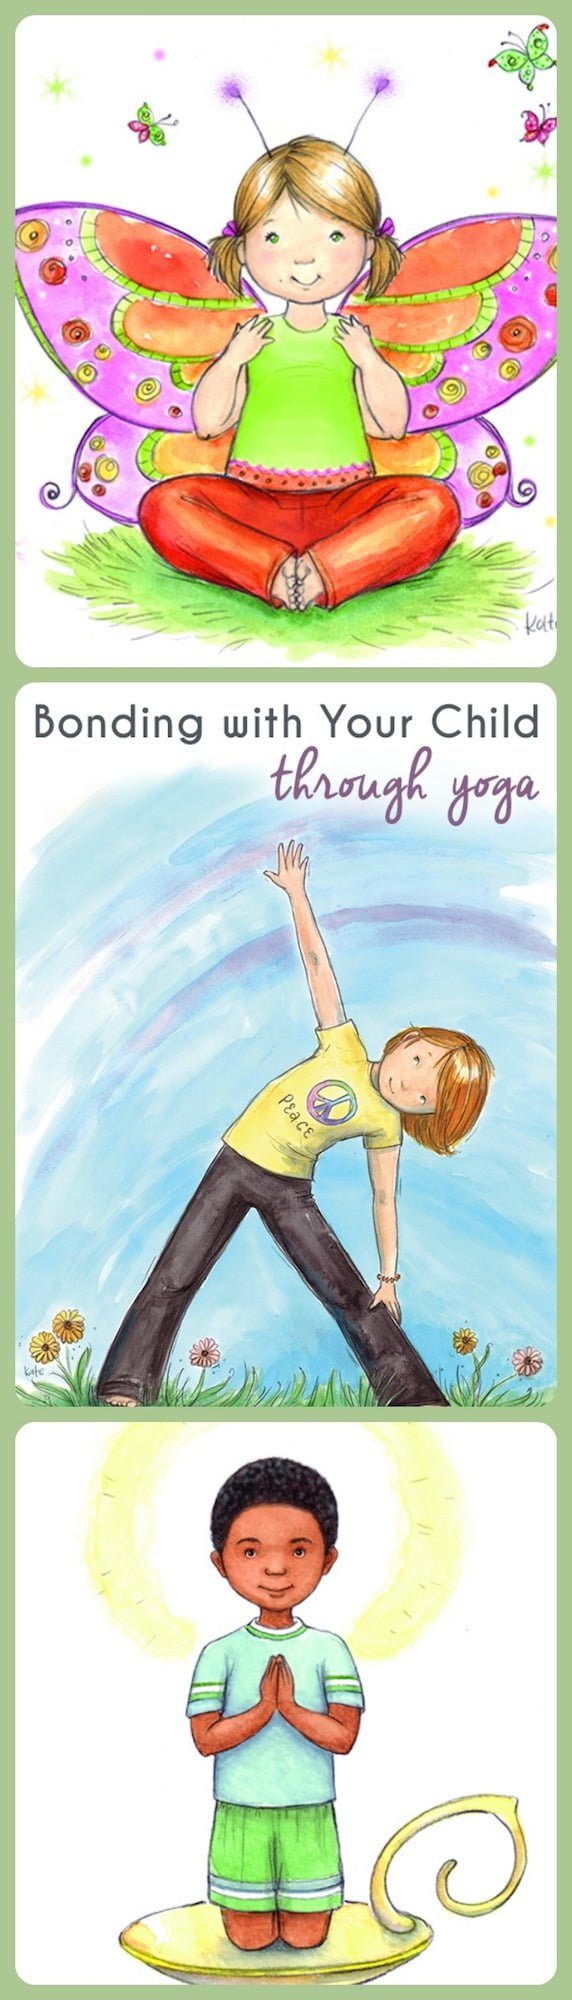 Bonding with your child through yoga